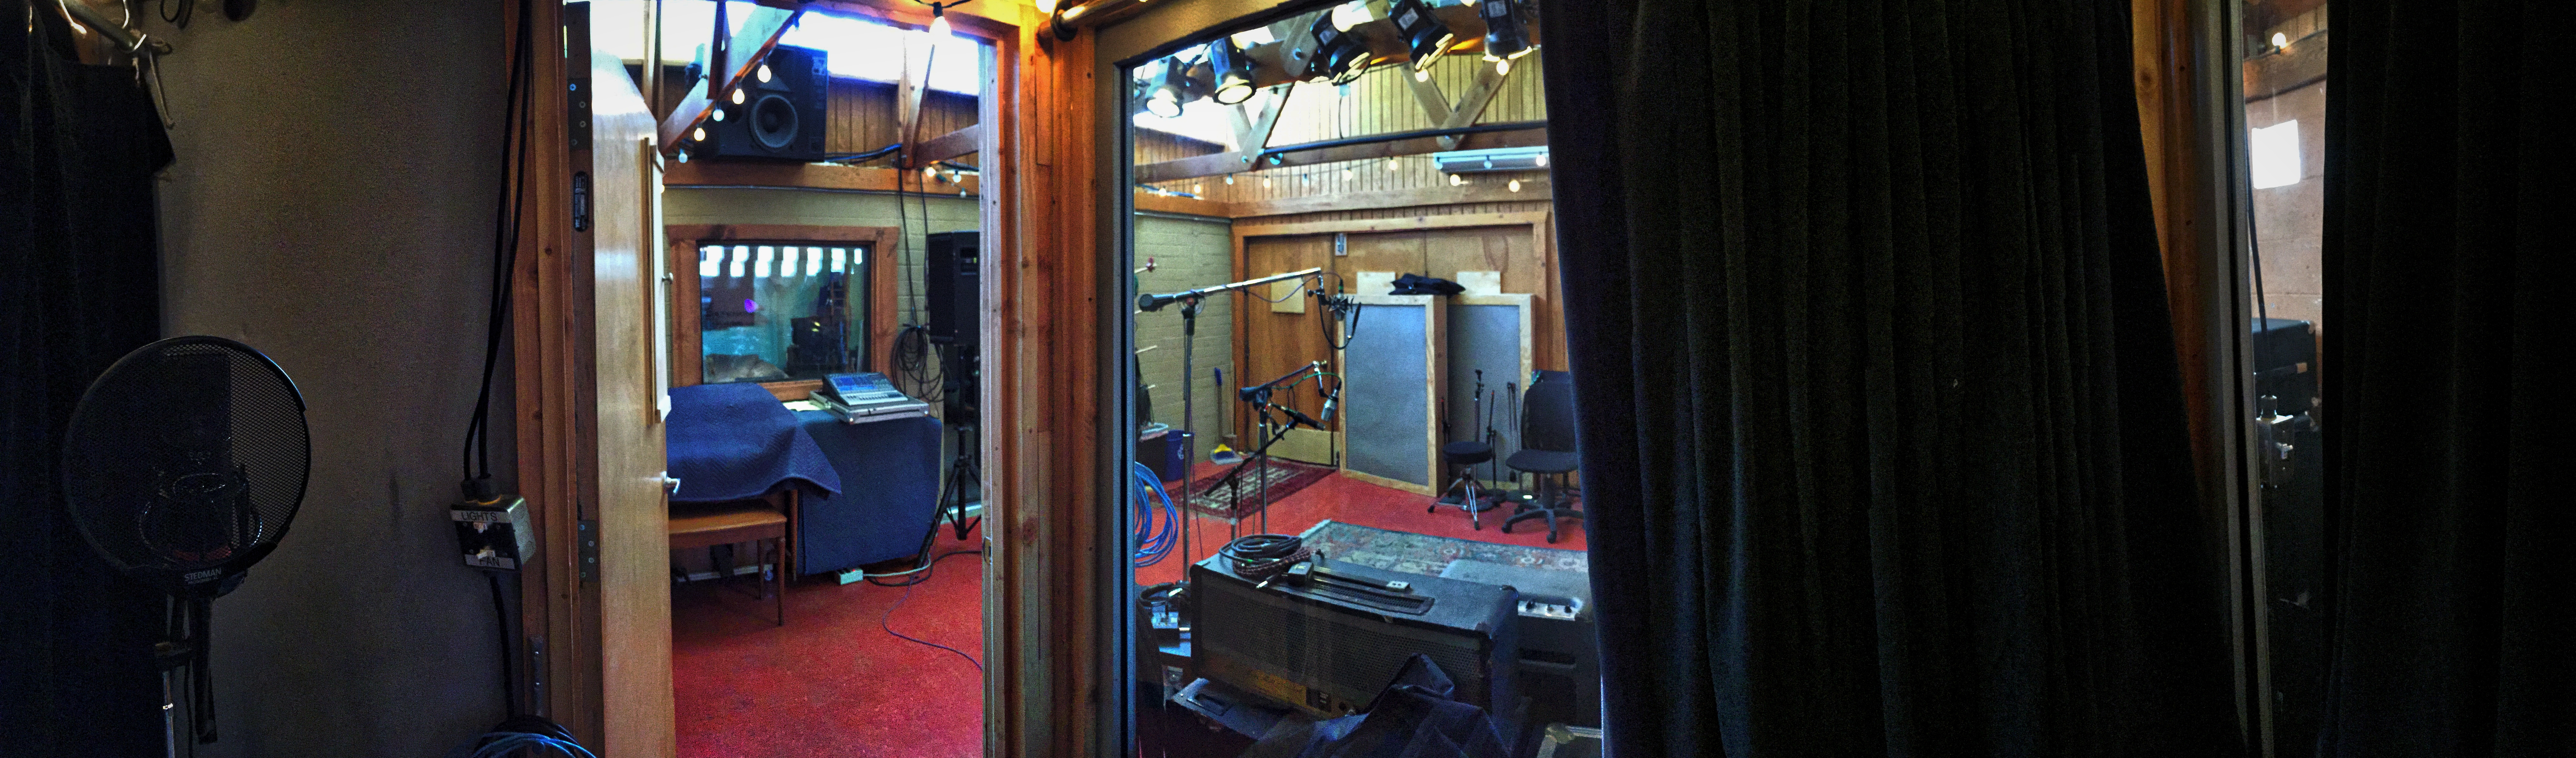 INSIDE BOOTH